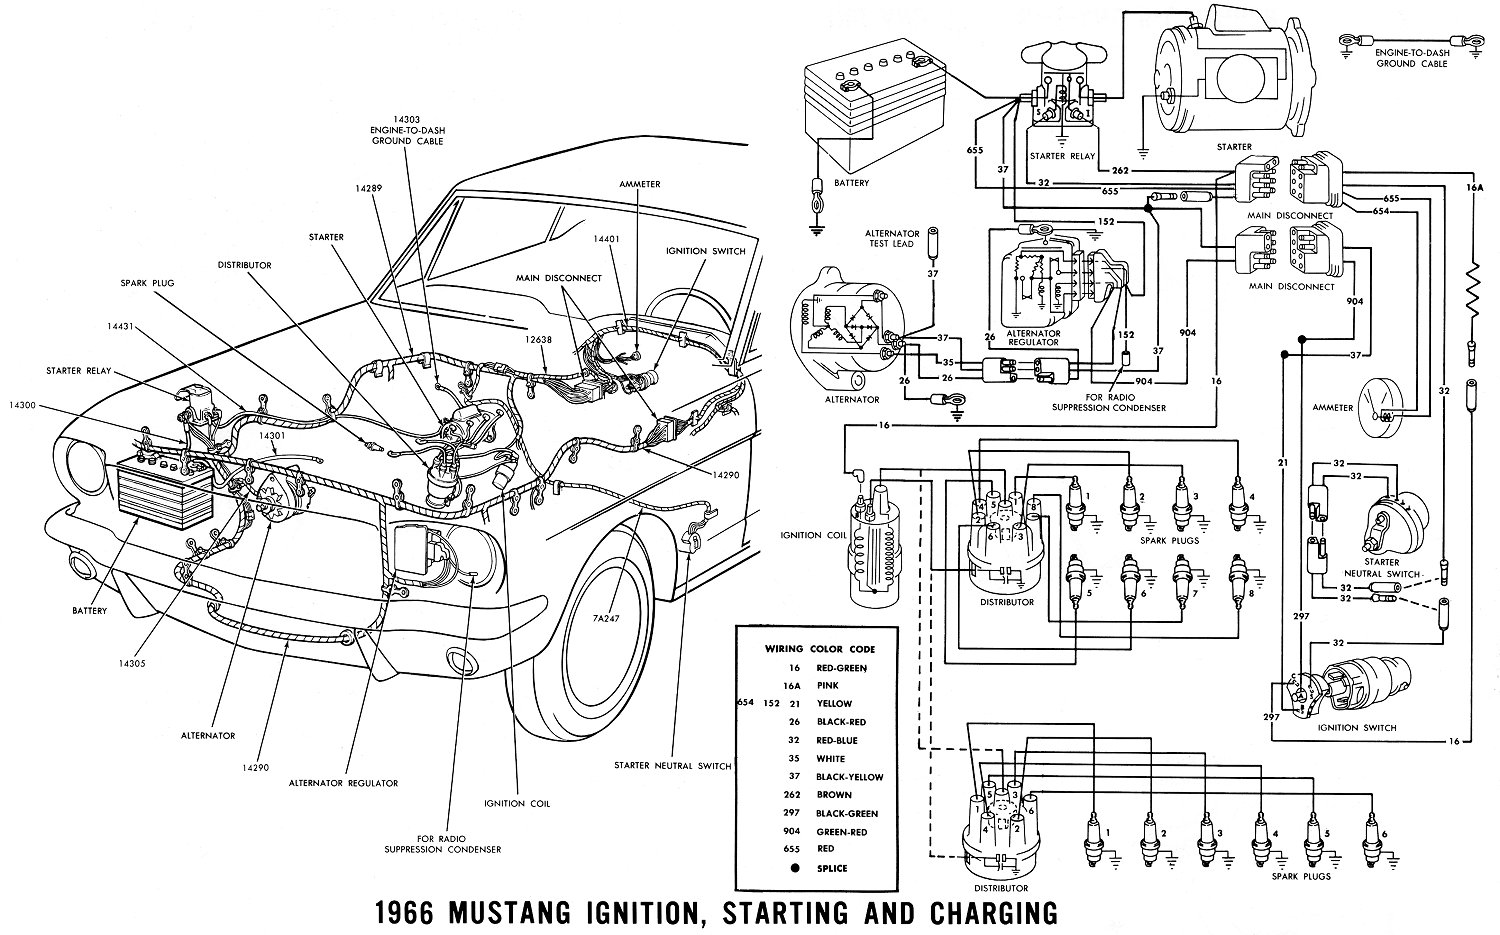 End Of A 1999 Ford Mustang Front Suspension Diagram Free Wiring